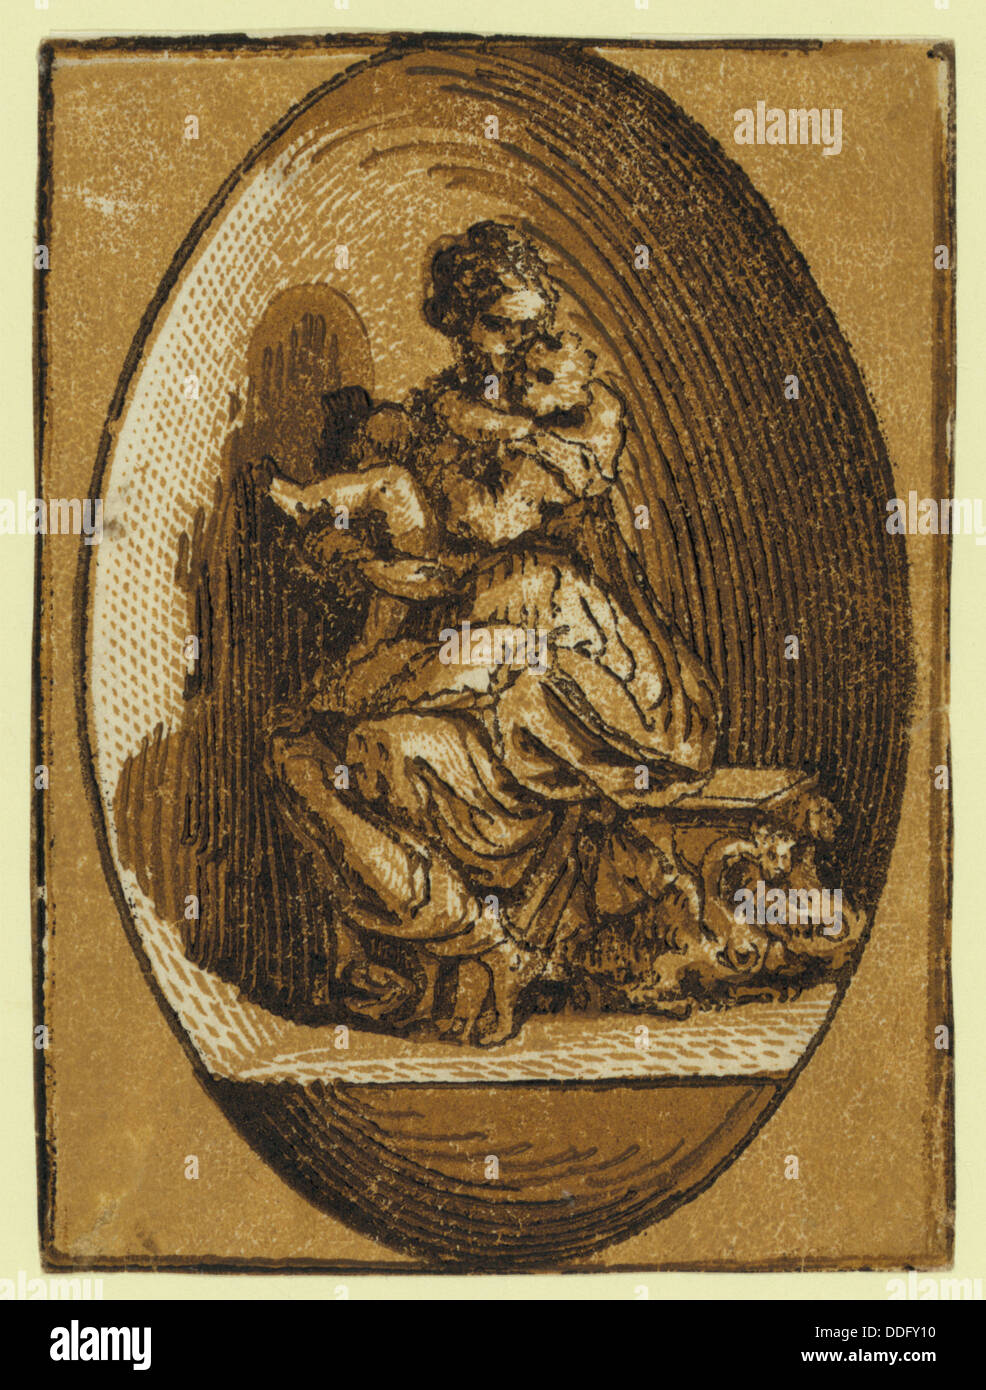 The Virgin in an oval, between ca. 1520 and 1700, Parmigianino, 1503-1540 - Stock Image